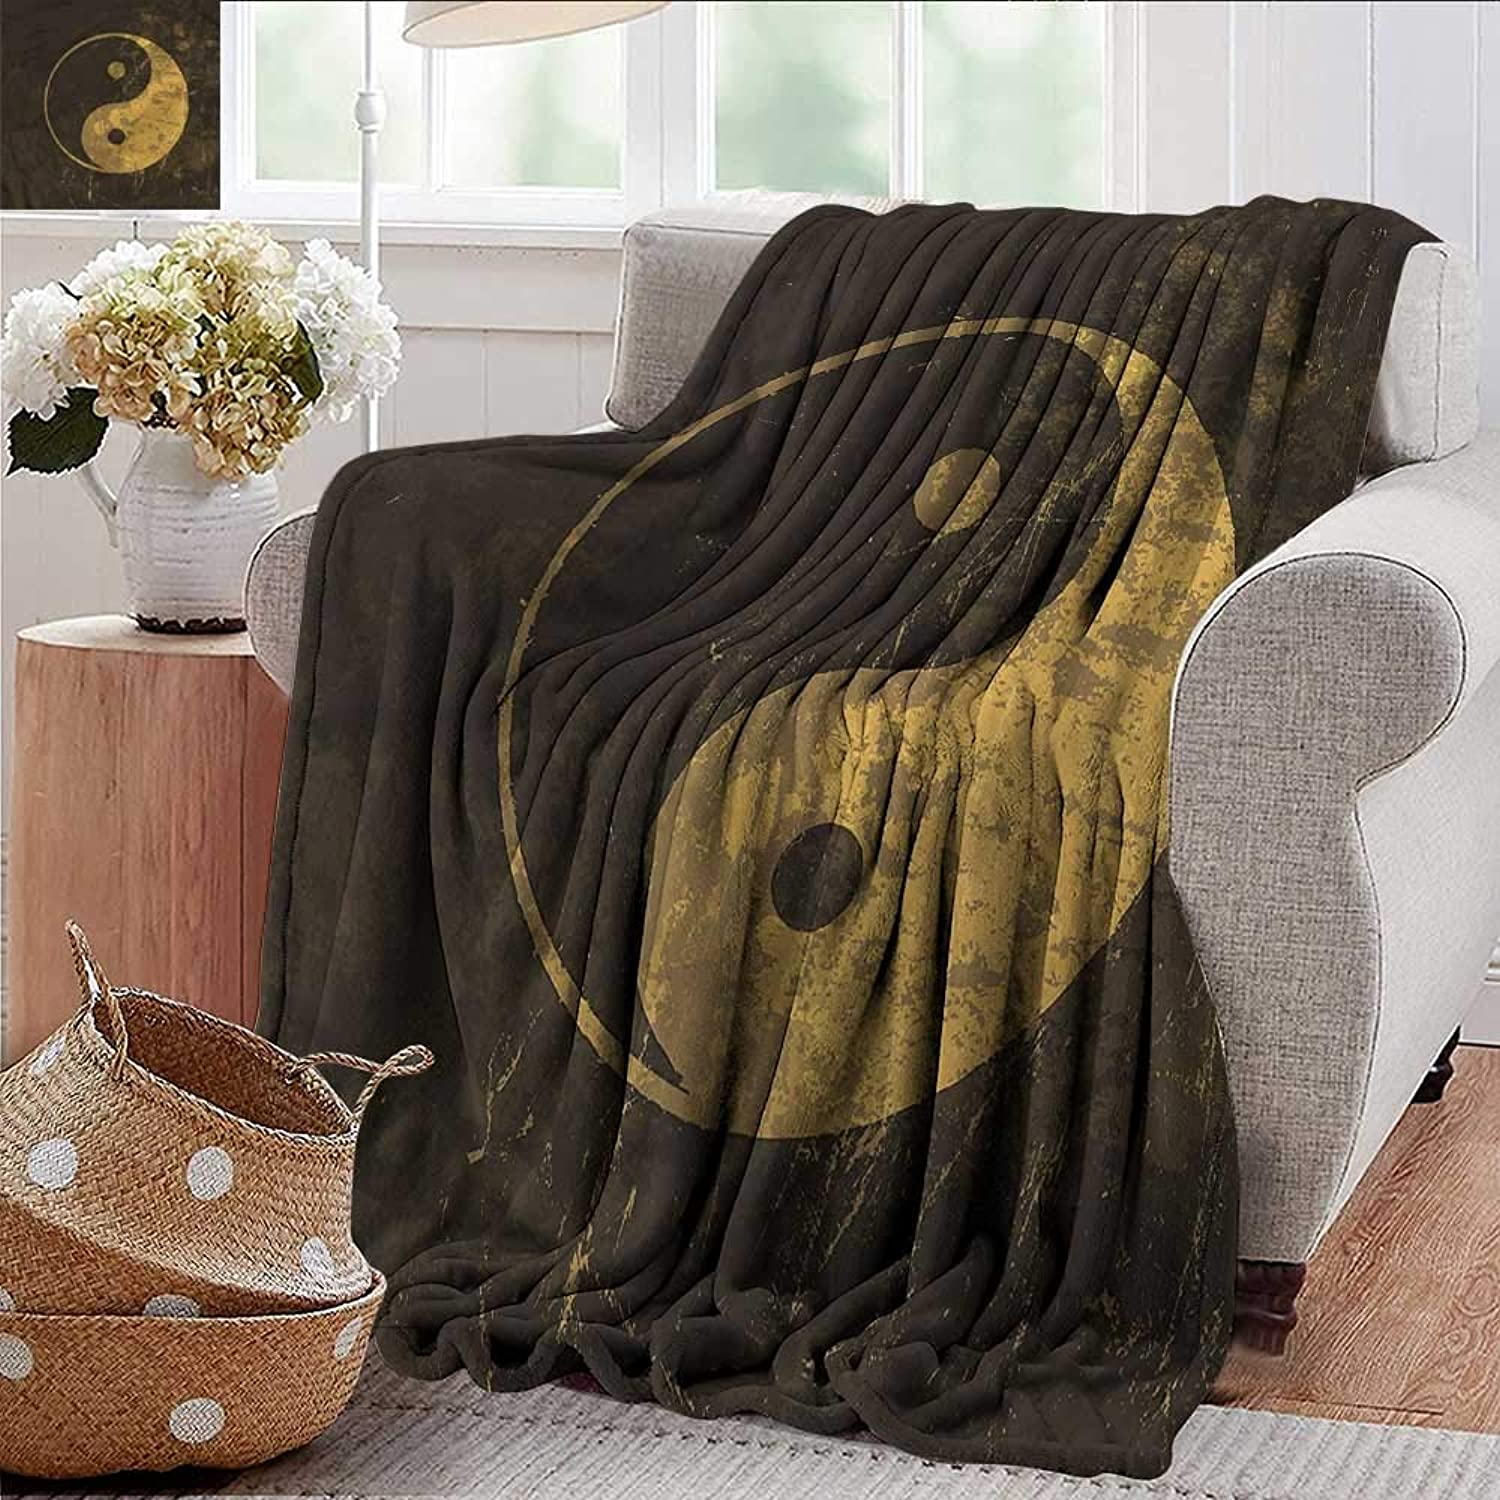 Xaviera Doherty Weighted Blanket for Kids Ying Yang,Harmony Themed Taijtu Soft Summer Cooling Lightweight Bed Blanket 50 x60